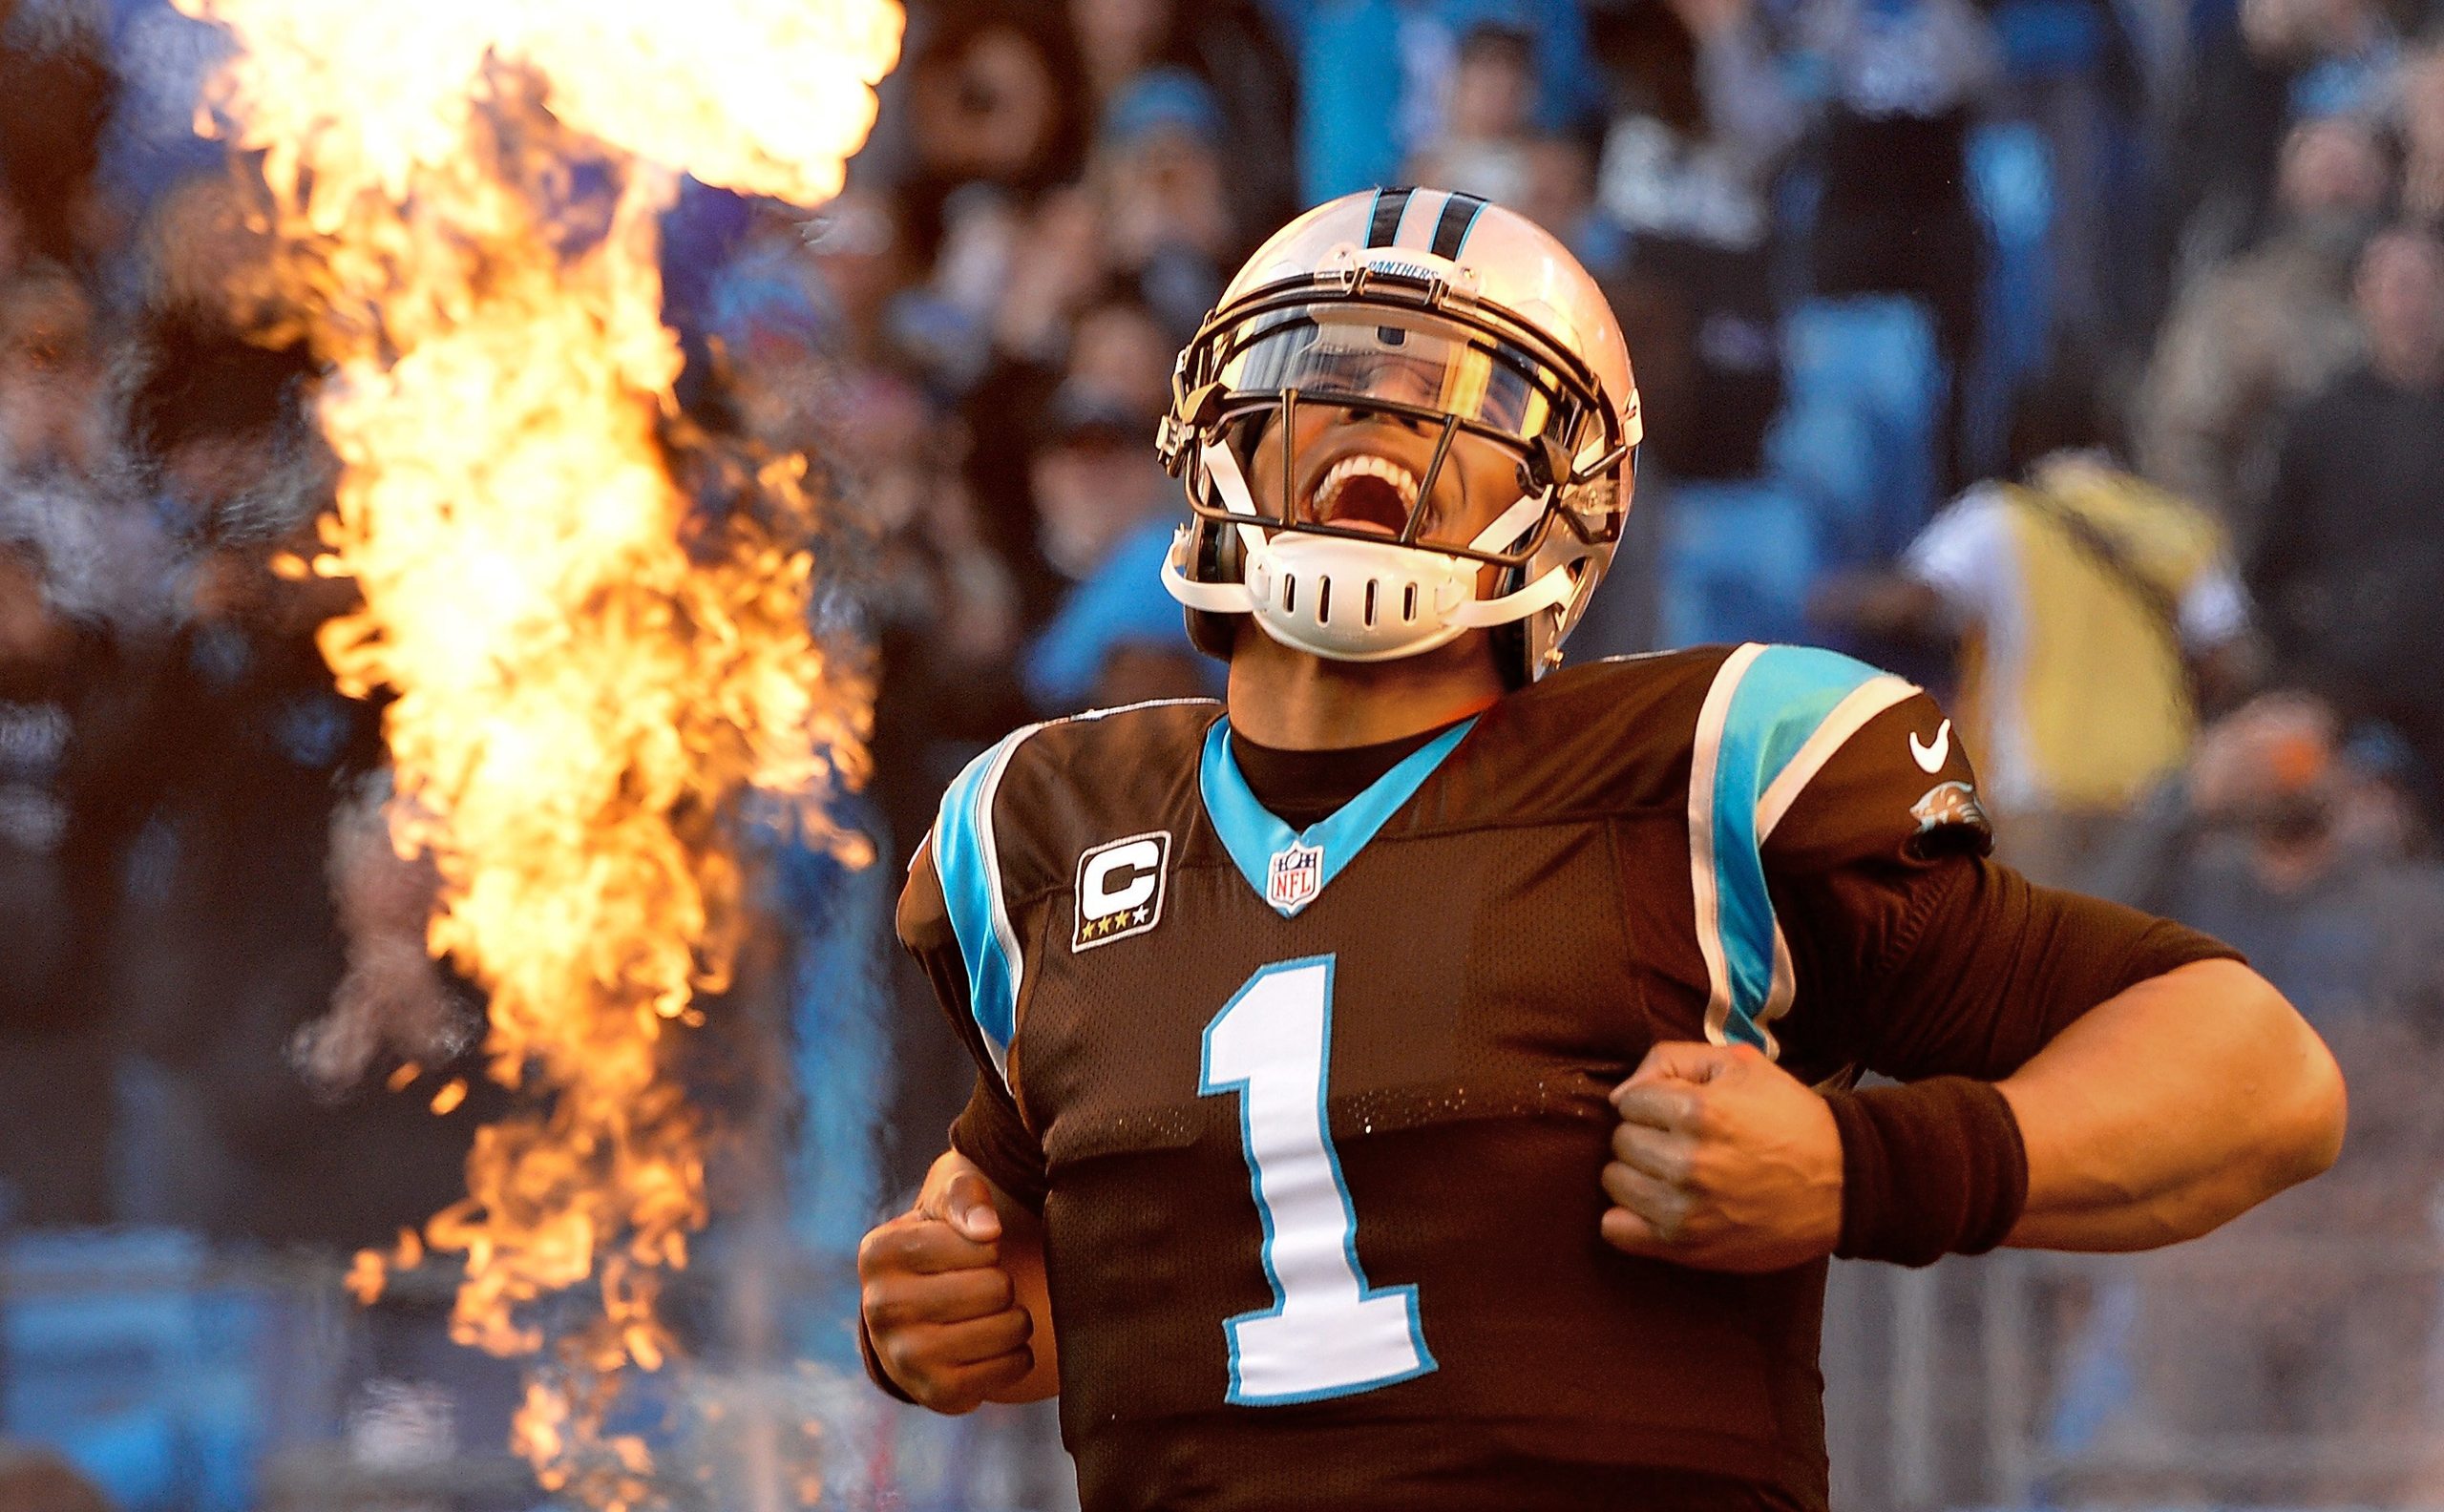 A fired-up Newton will lead Carolina against Denver and Peyton Manning in the Super Bowl on Feb.7